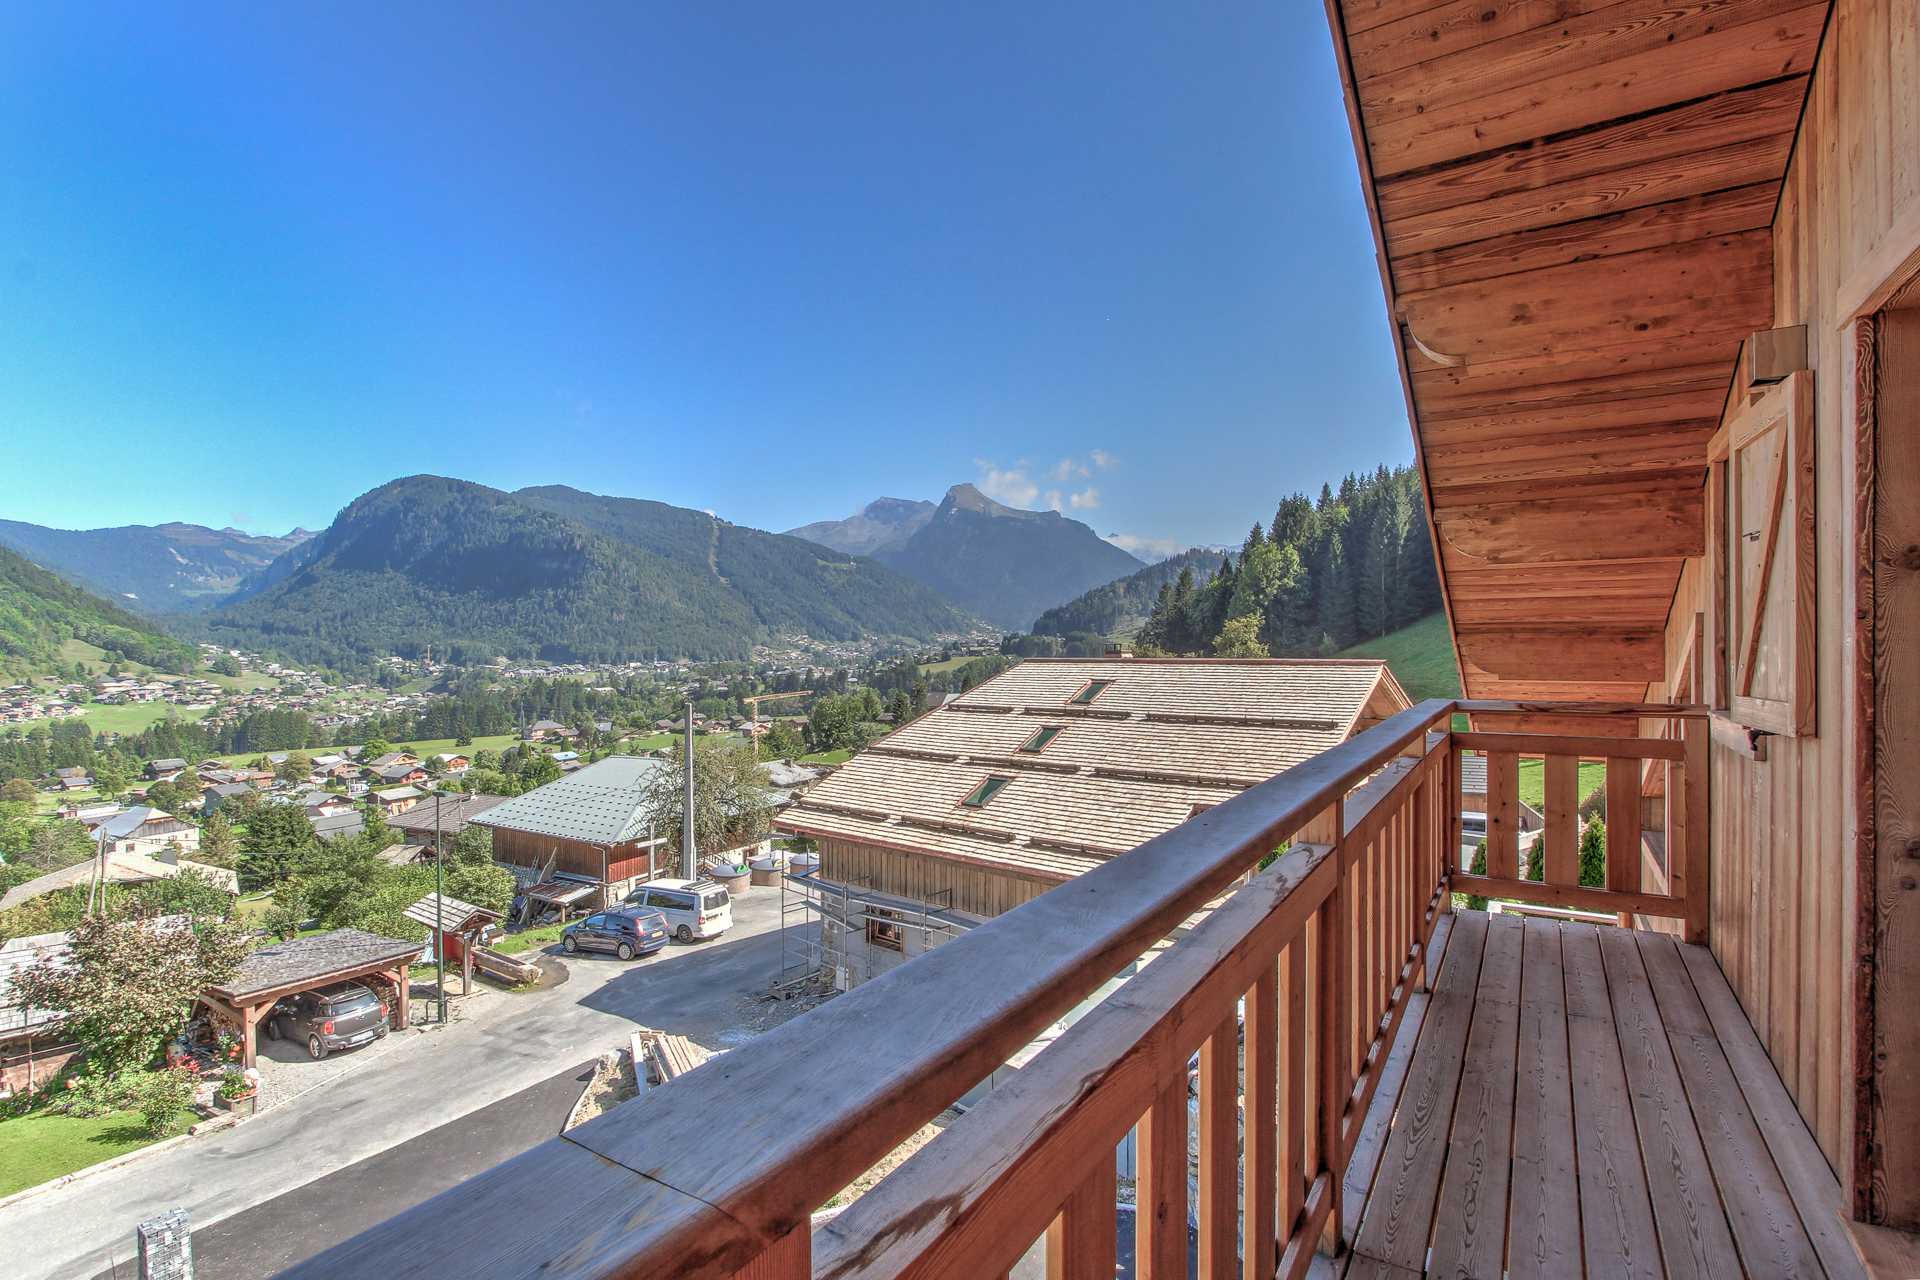 Chalet view